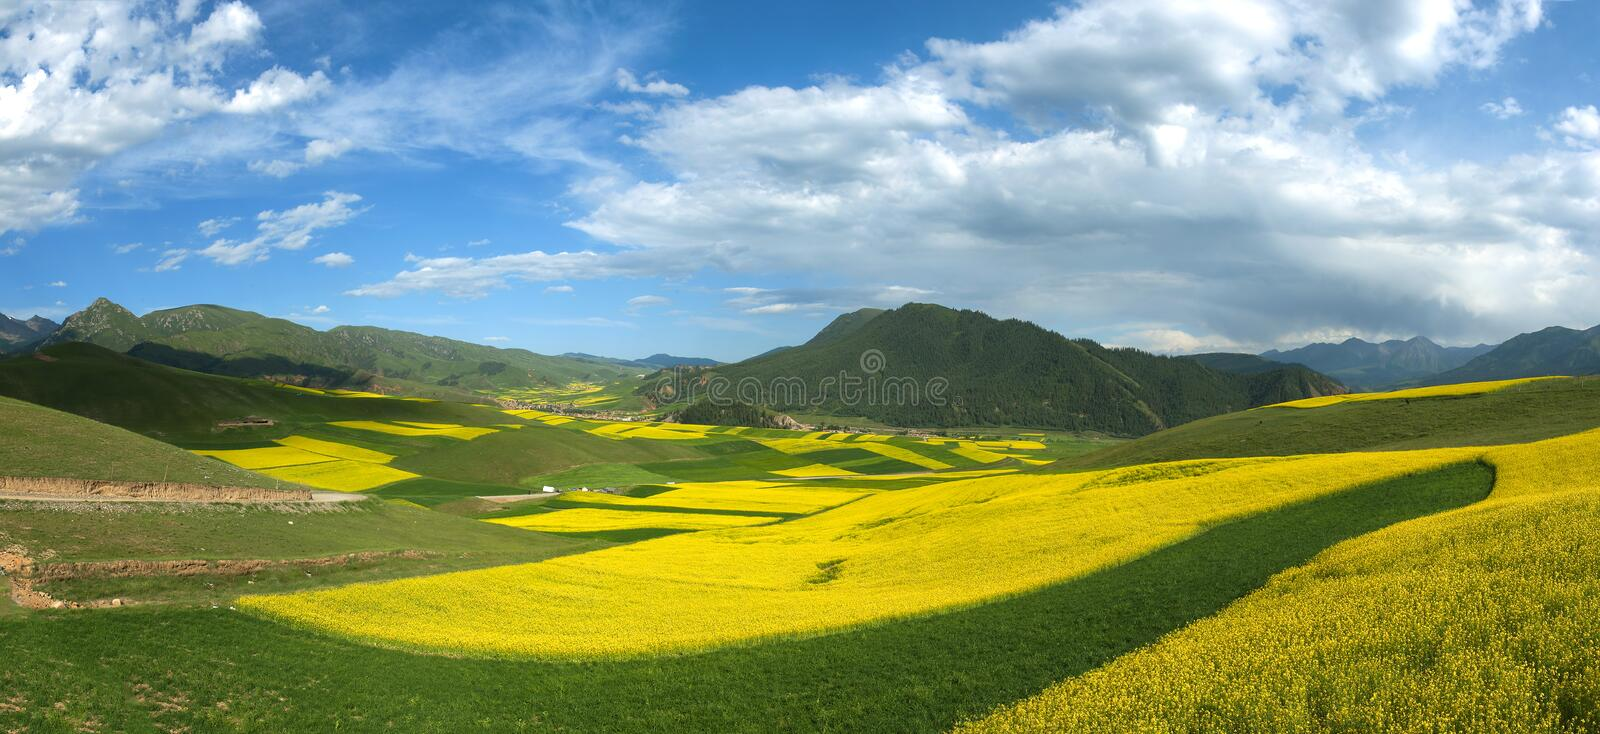 Colorful Mountain Landscape royalty free stock image